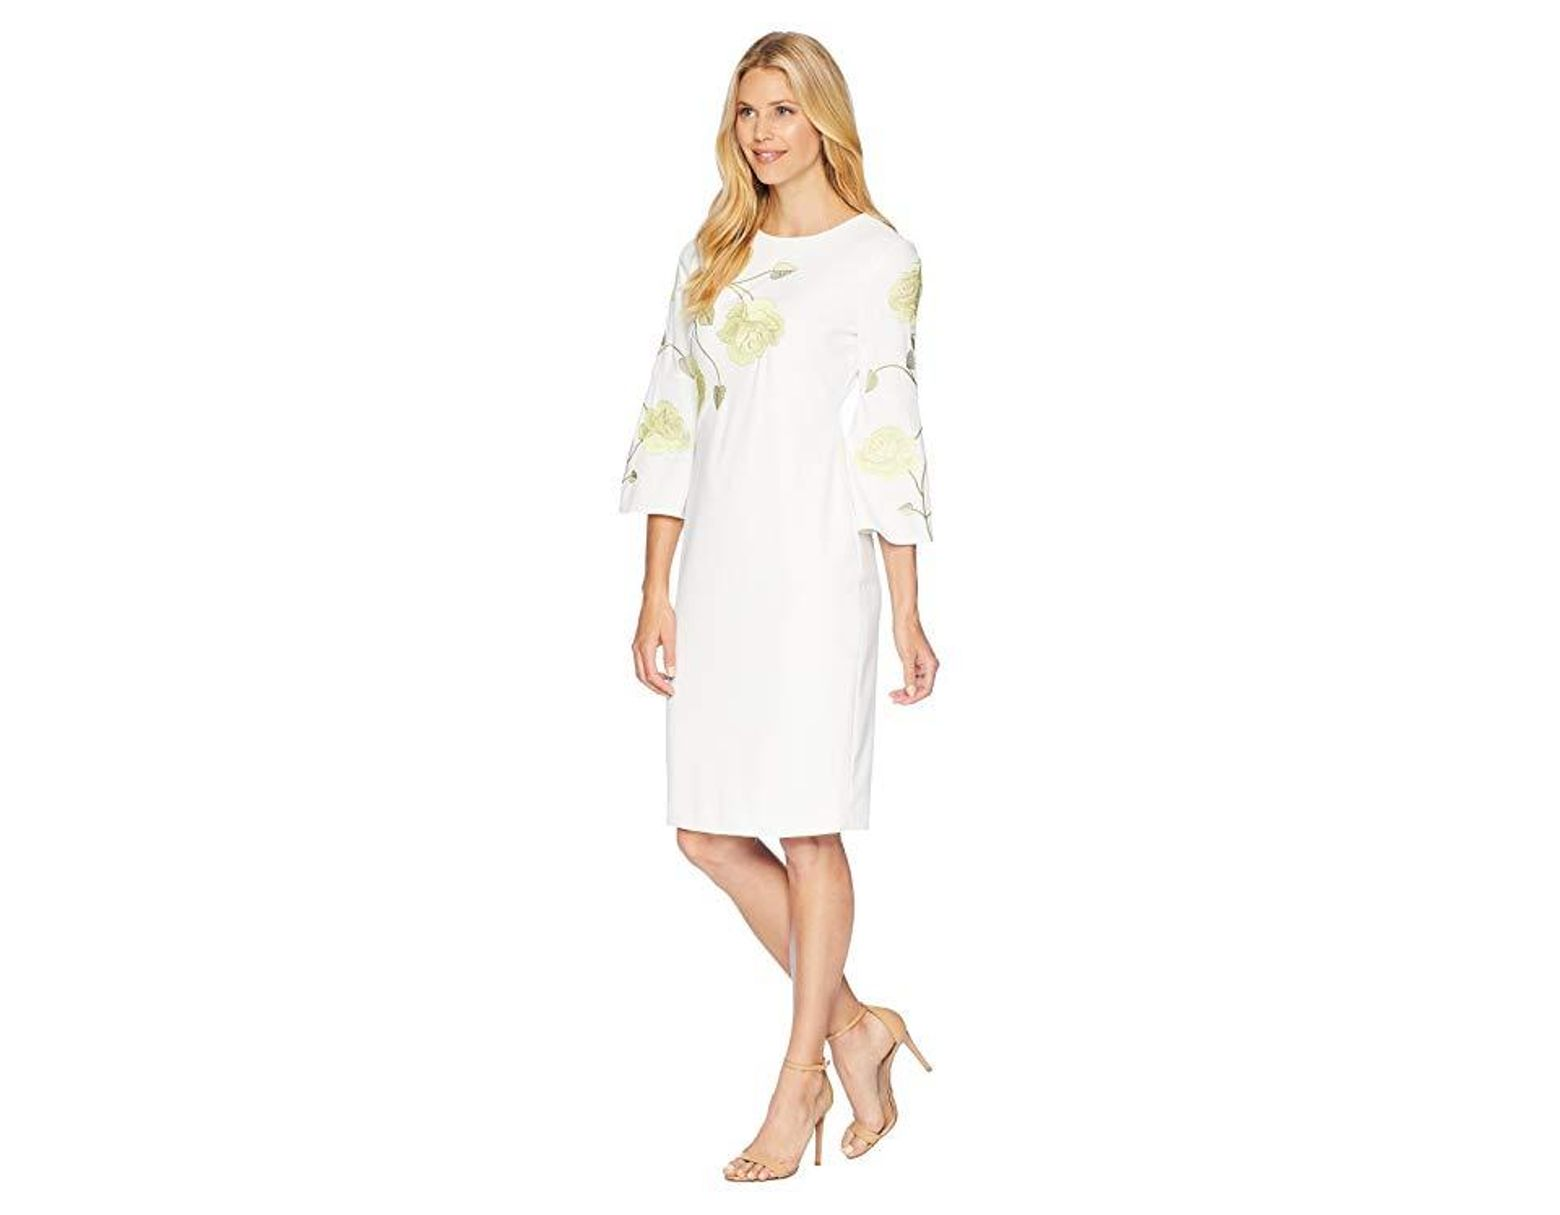 e6fcd356d819 Tahari Long Sleeve Floral Embroidered Crepe Sheath Dress  (white/citron/green) Dress in White - Save 51% - Lyst